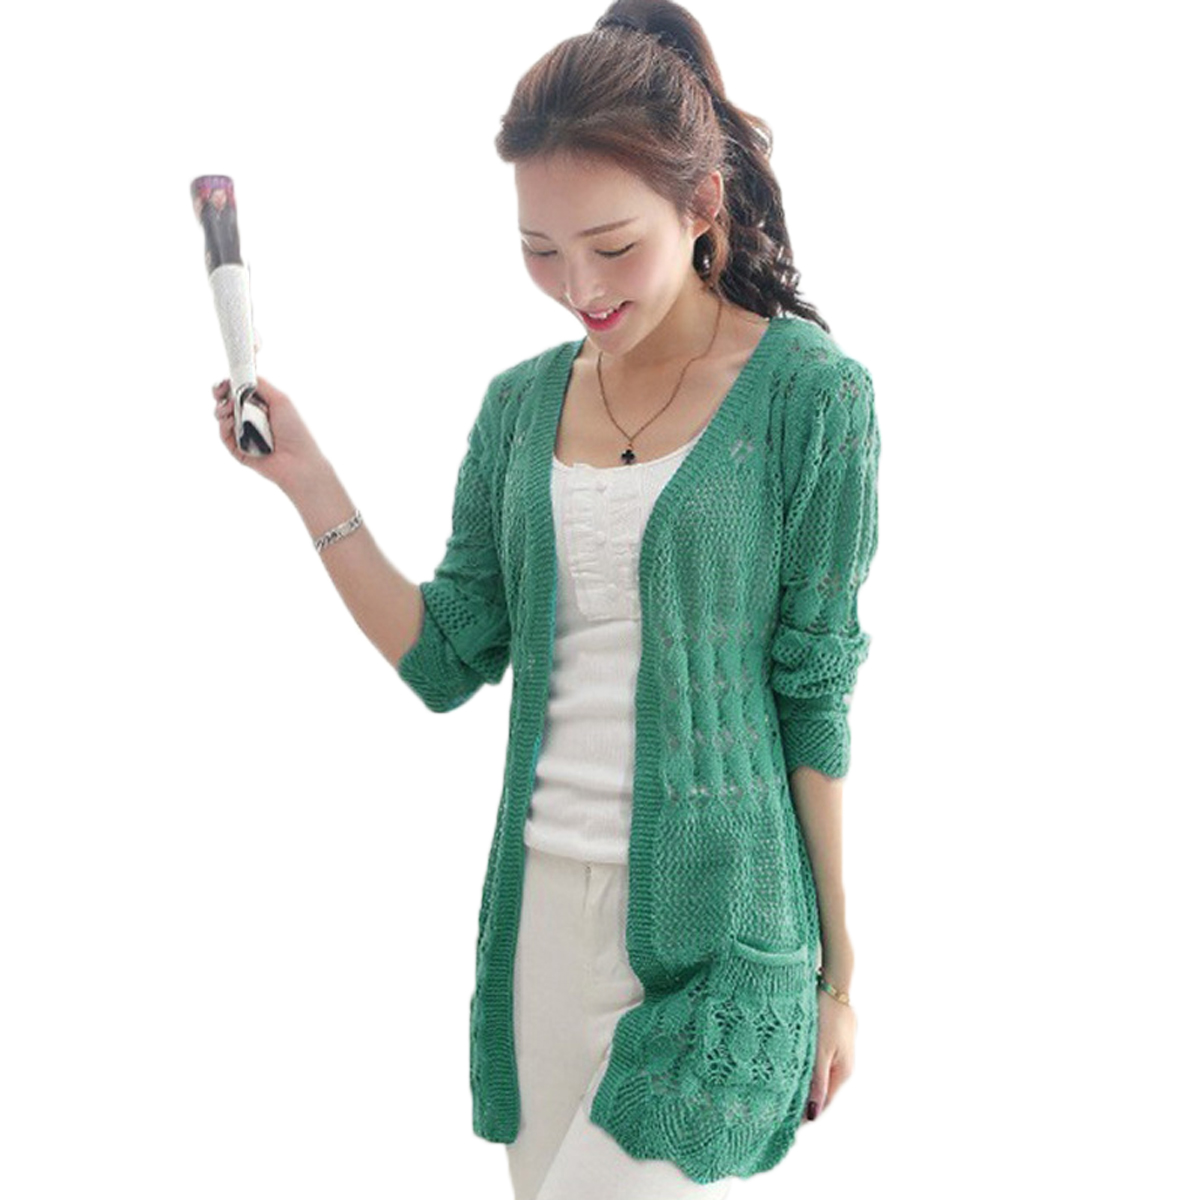 9287bff723f5 2017 Ladies Crochet Tops Fashion Women Beach Cardigan Spring Summer Hollow  Out Knitted Sweaters Size Rebecas Mujer-in Cardigans from Women's Clothing  ...